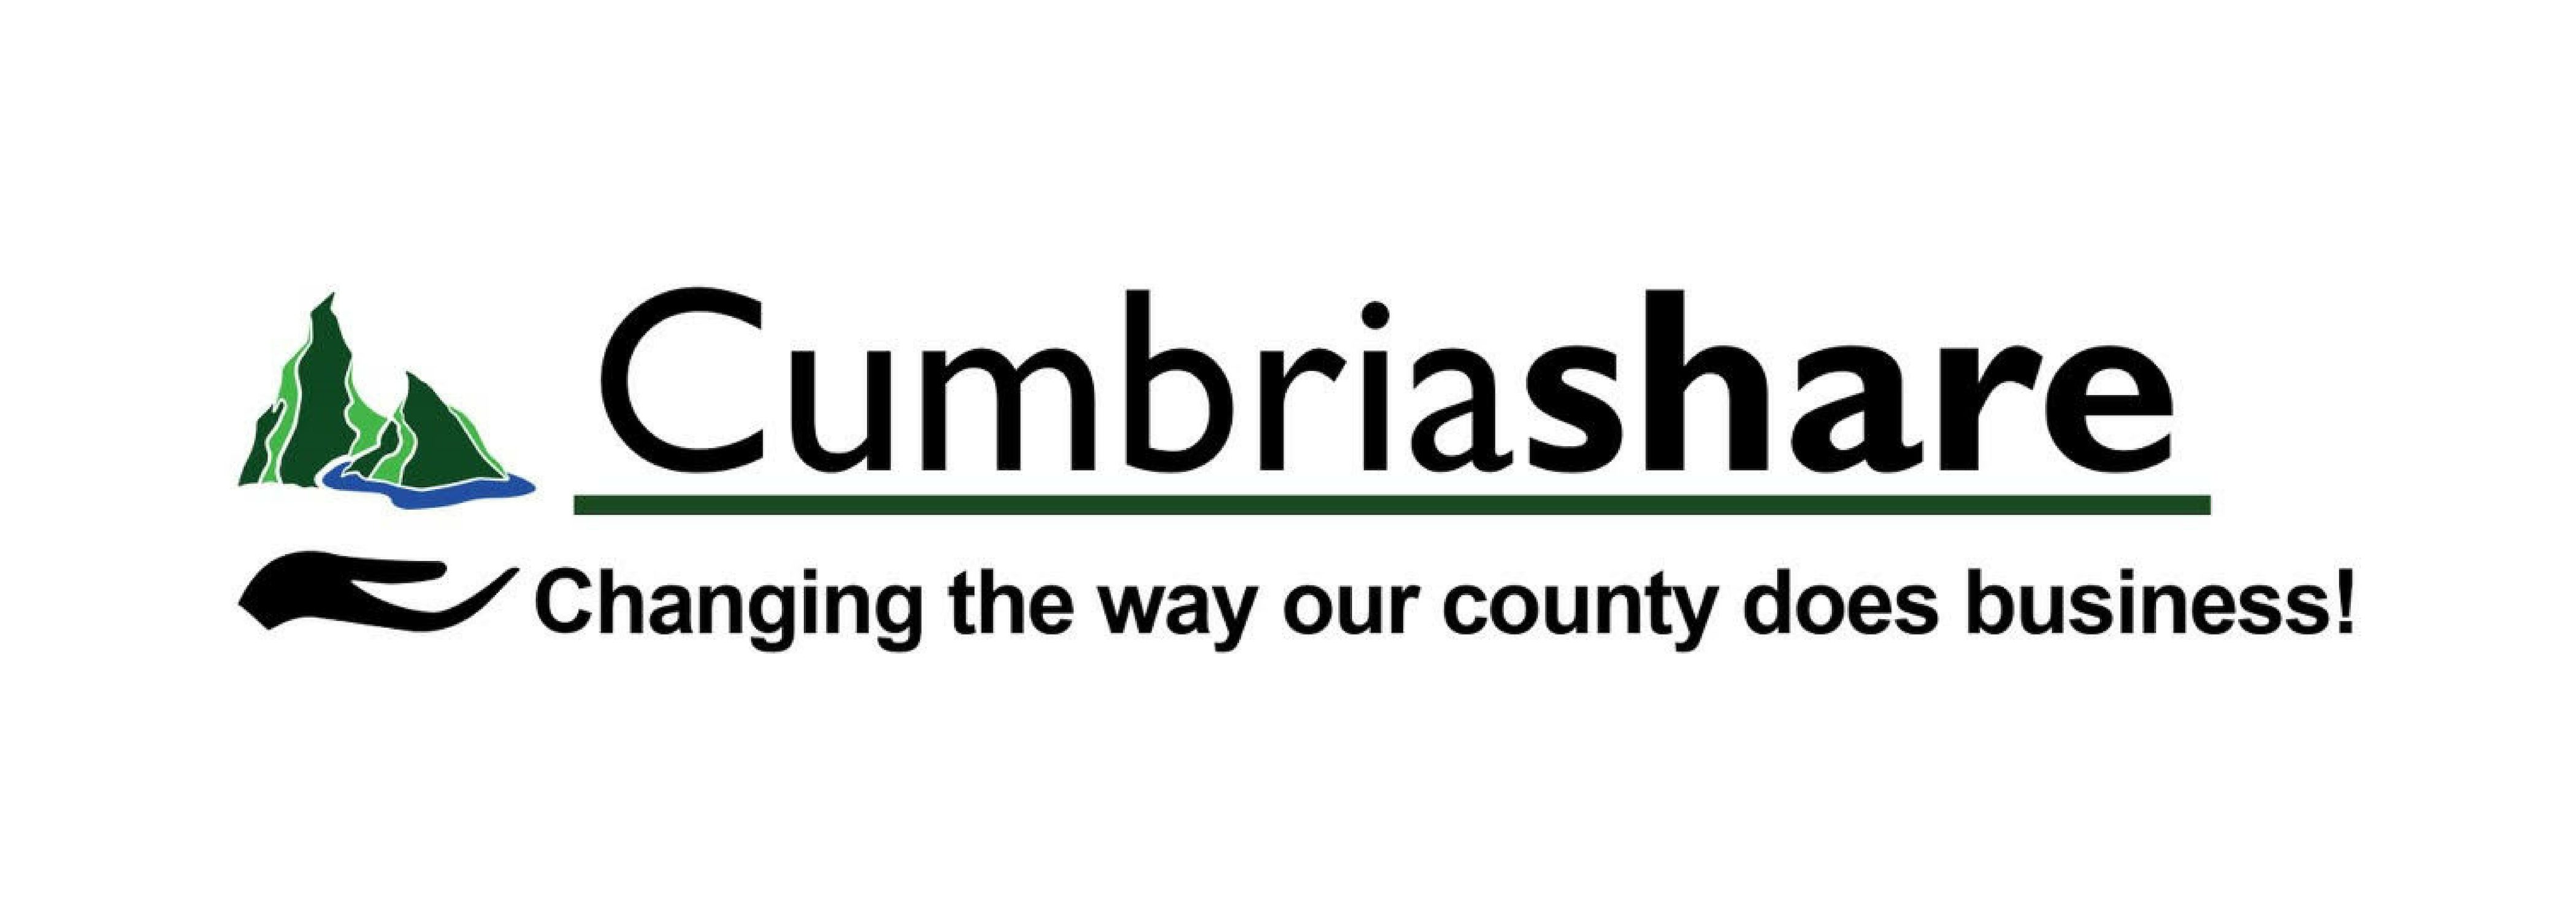 Cumbriashare; Now it's our turn...